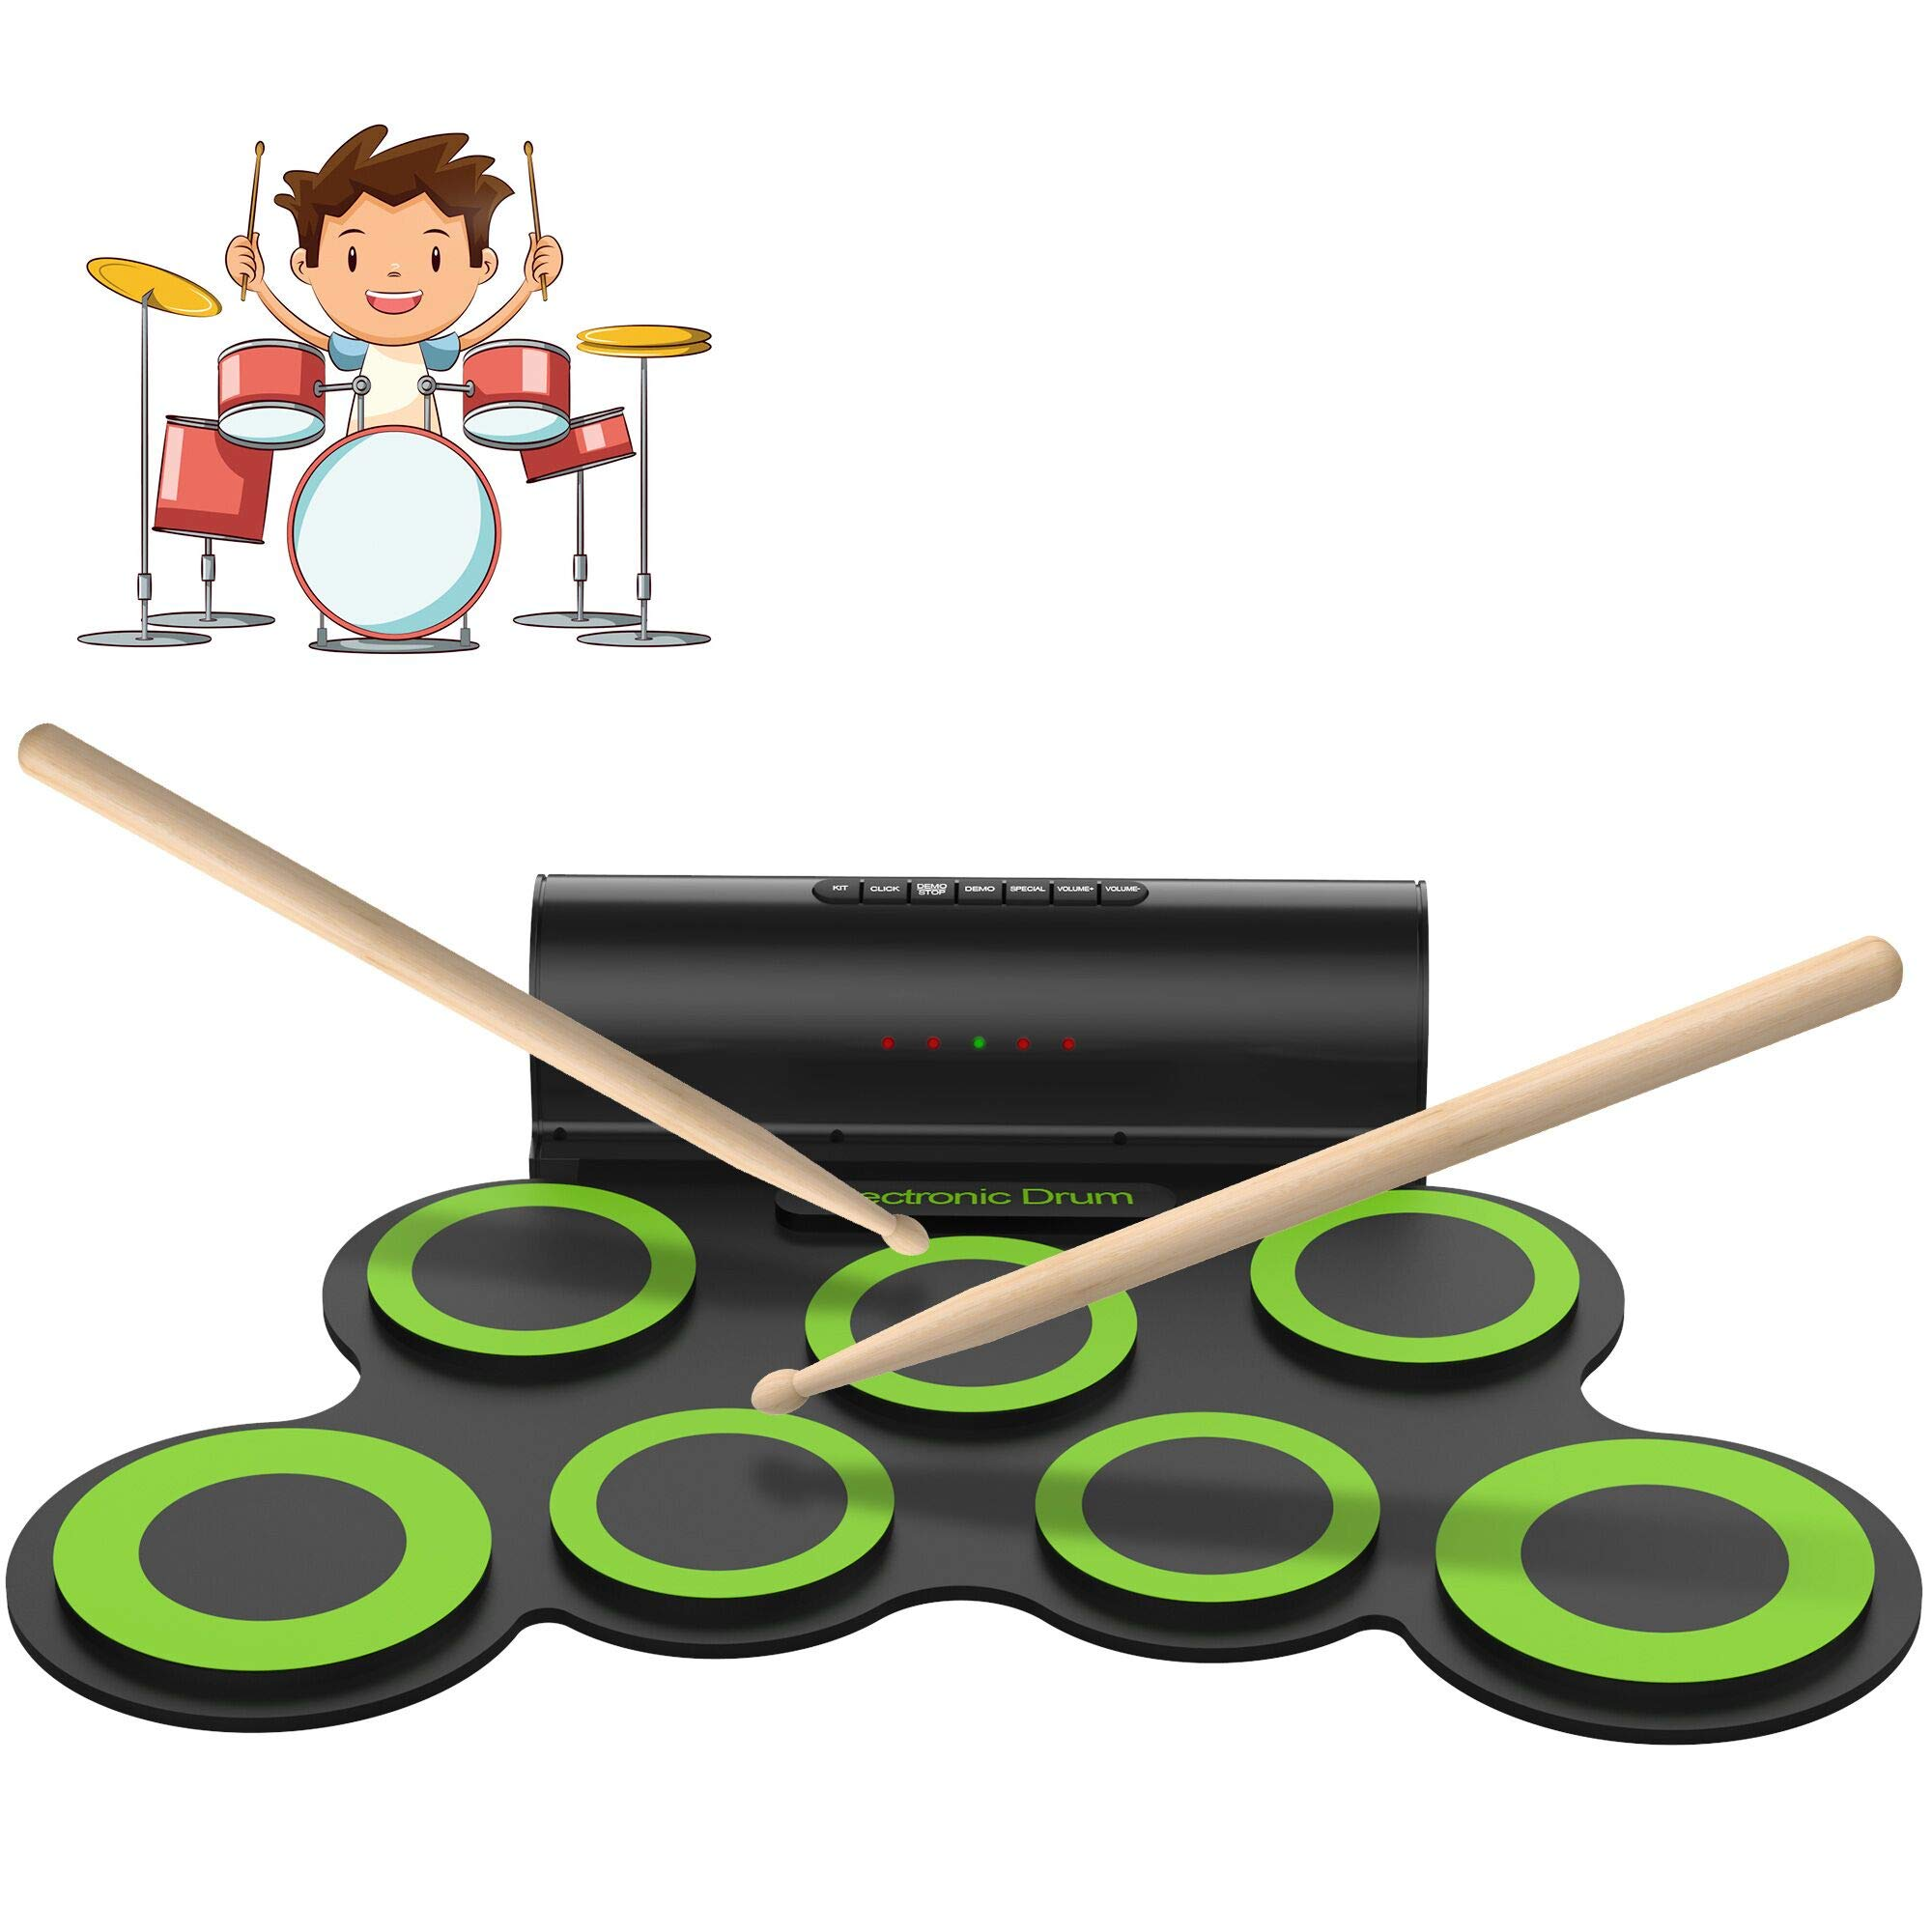 ORASANT Electric Drum Set, Roll Up Electronic Drum Set for Kids, Rechargeable Drum Pad Starter Practice Kit Allows Built-in Speaker and Headphone, Great Gift for Kids, Teens and Adults by ORASANT